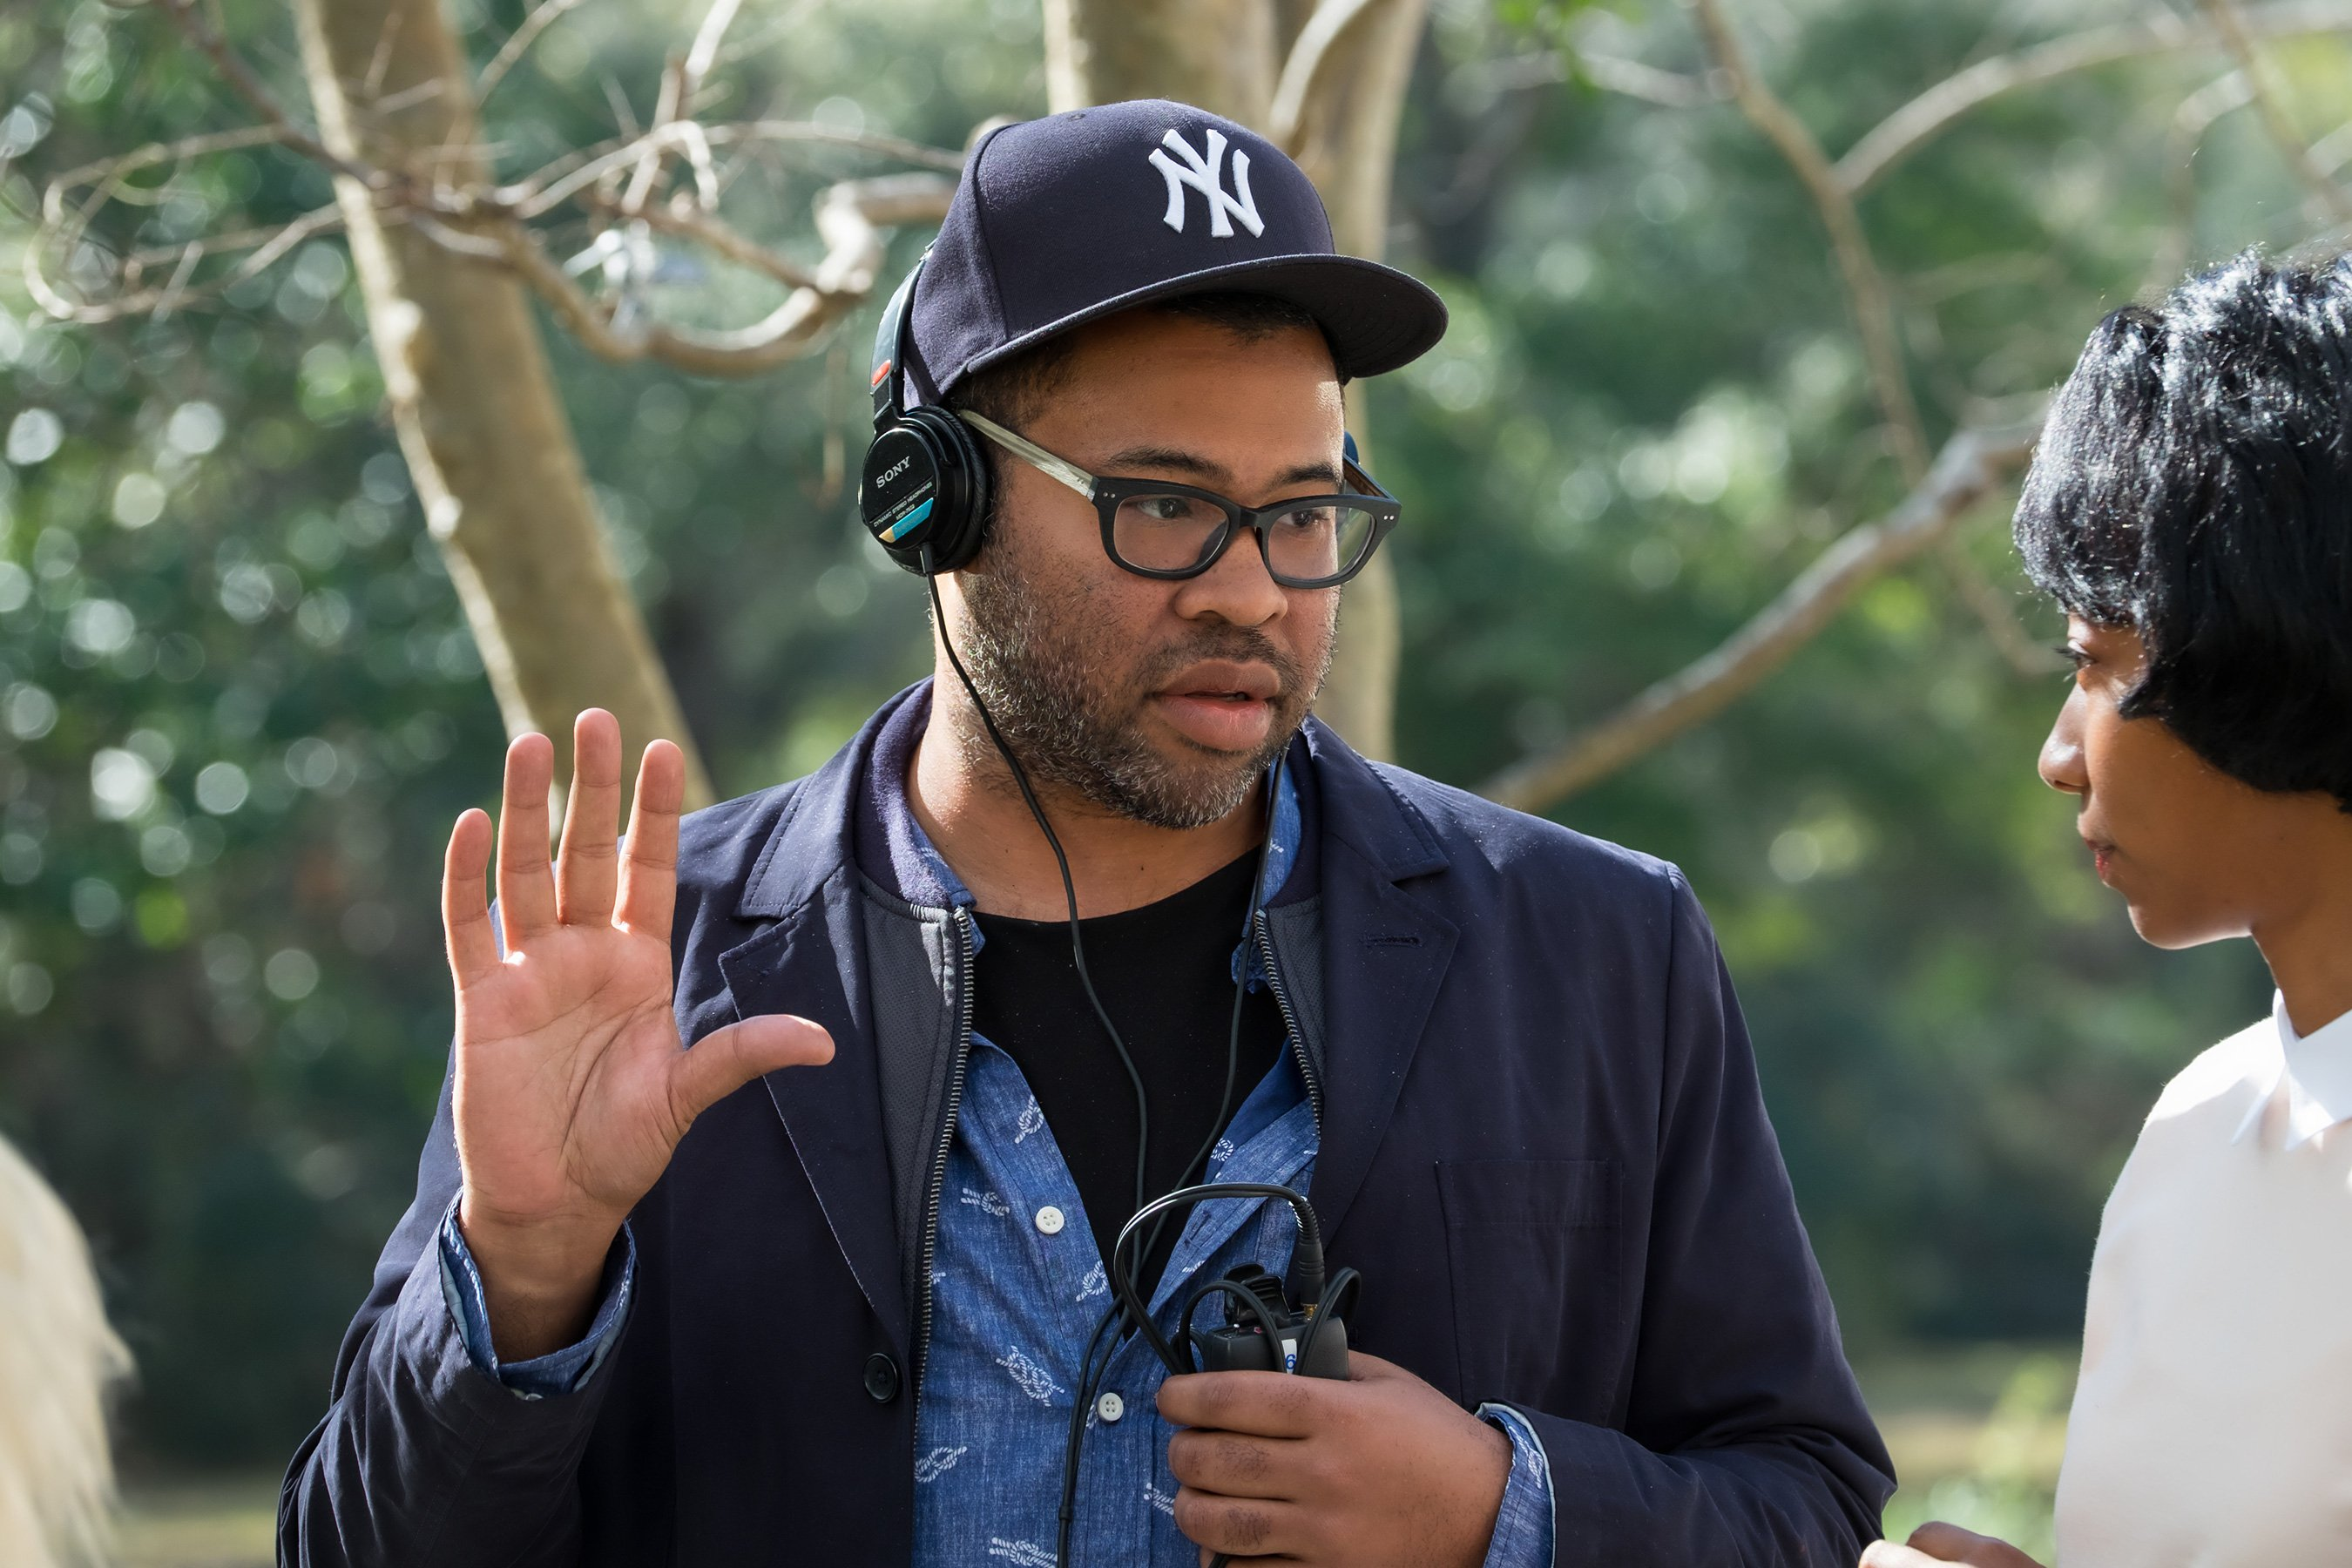 Jordan Peele says he's done with acting